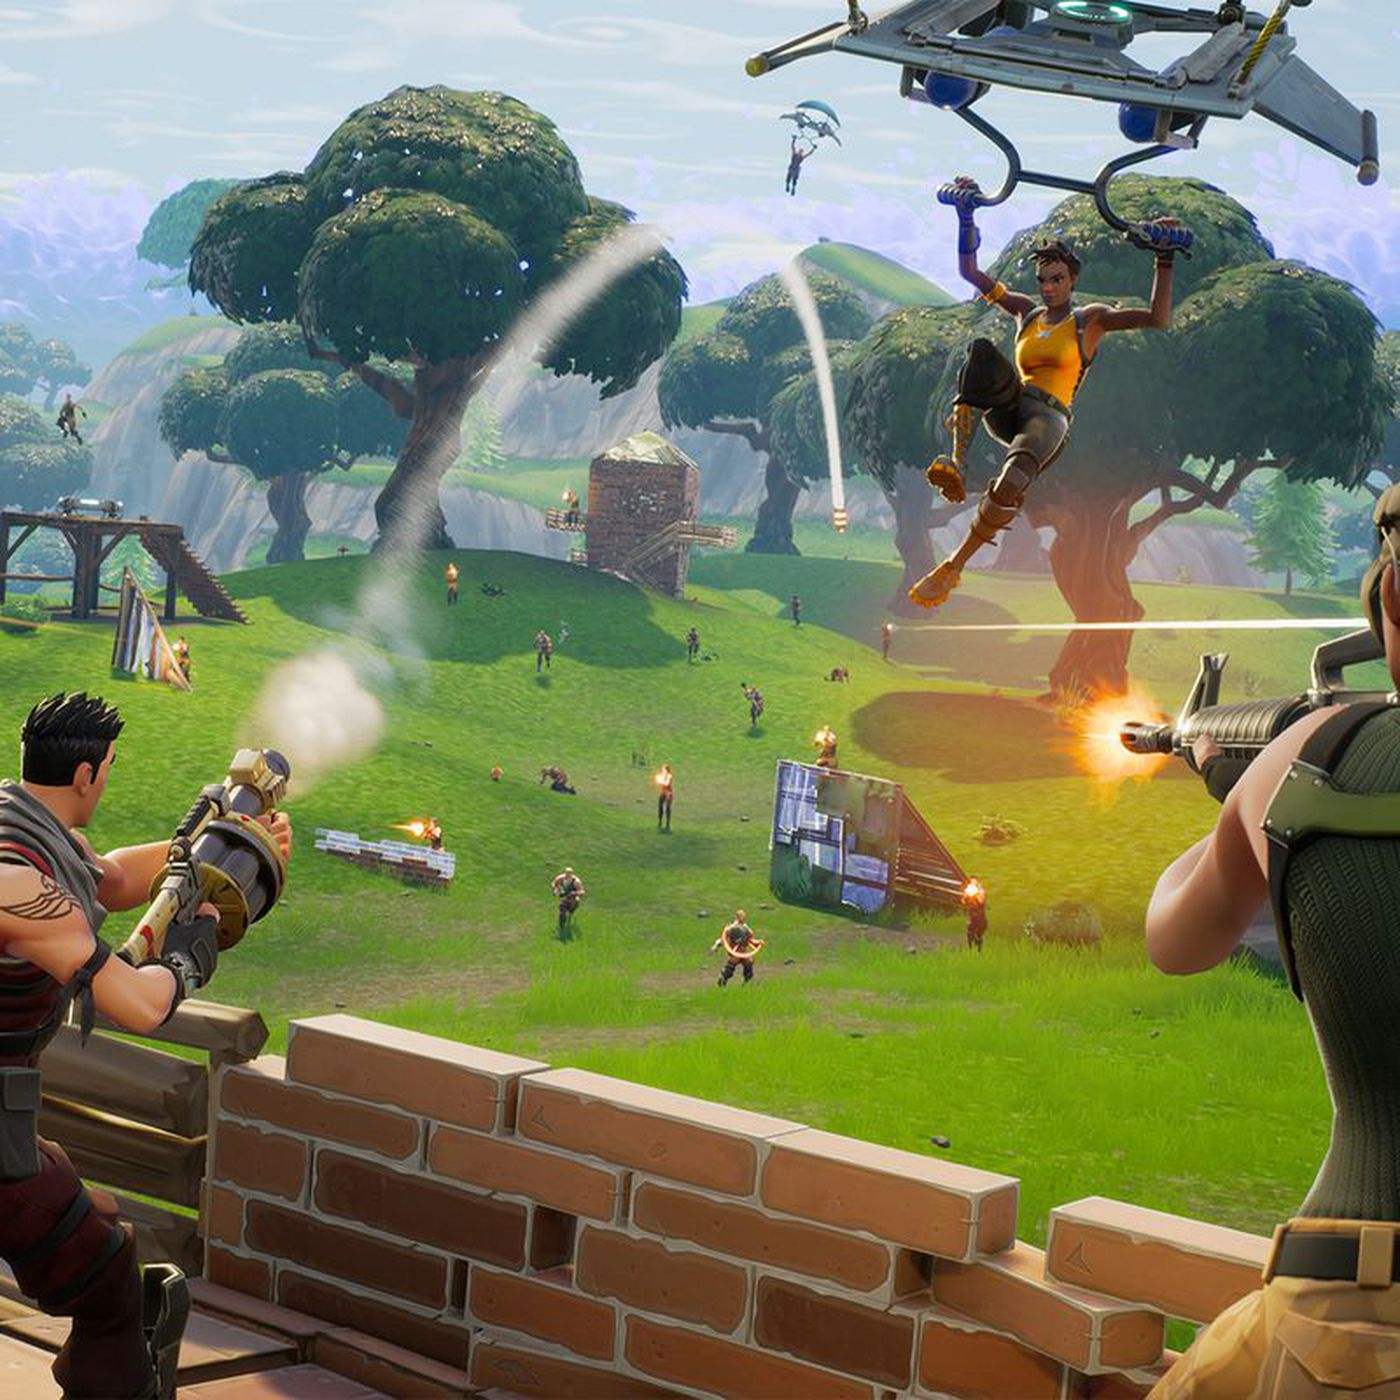 microsoft suggests fortnite ps4 vs xbox one cross play could happen - fortnite ps4 crossplay with pc